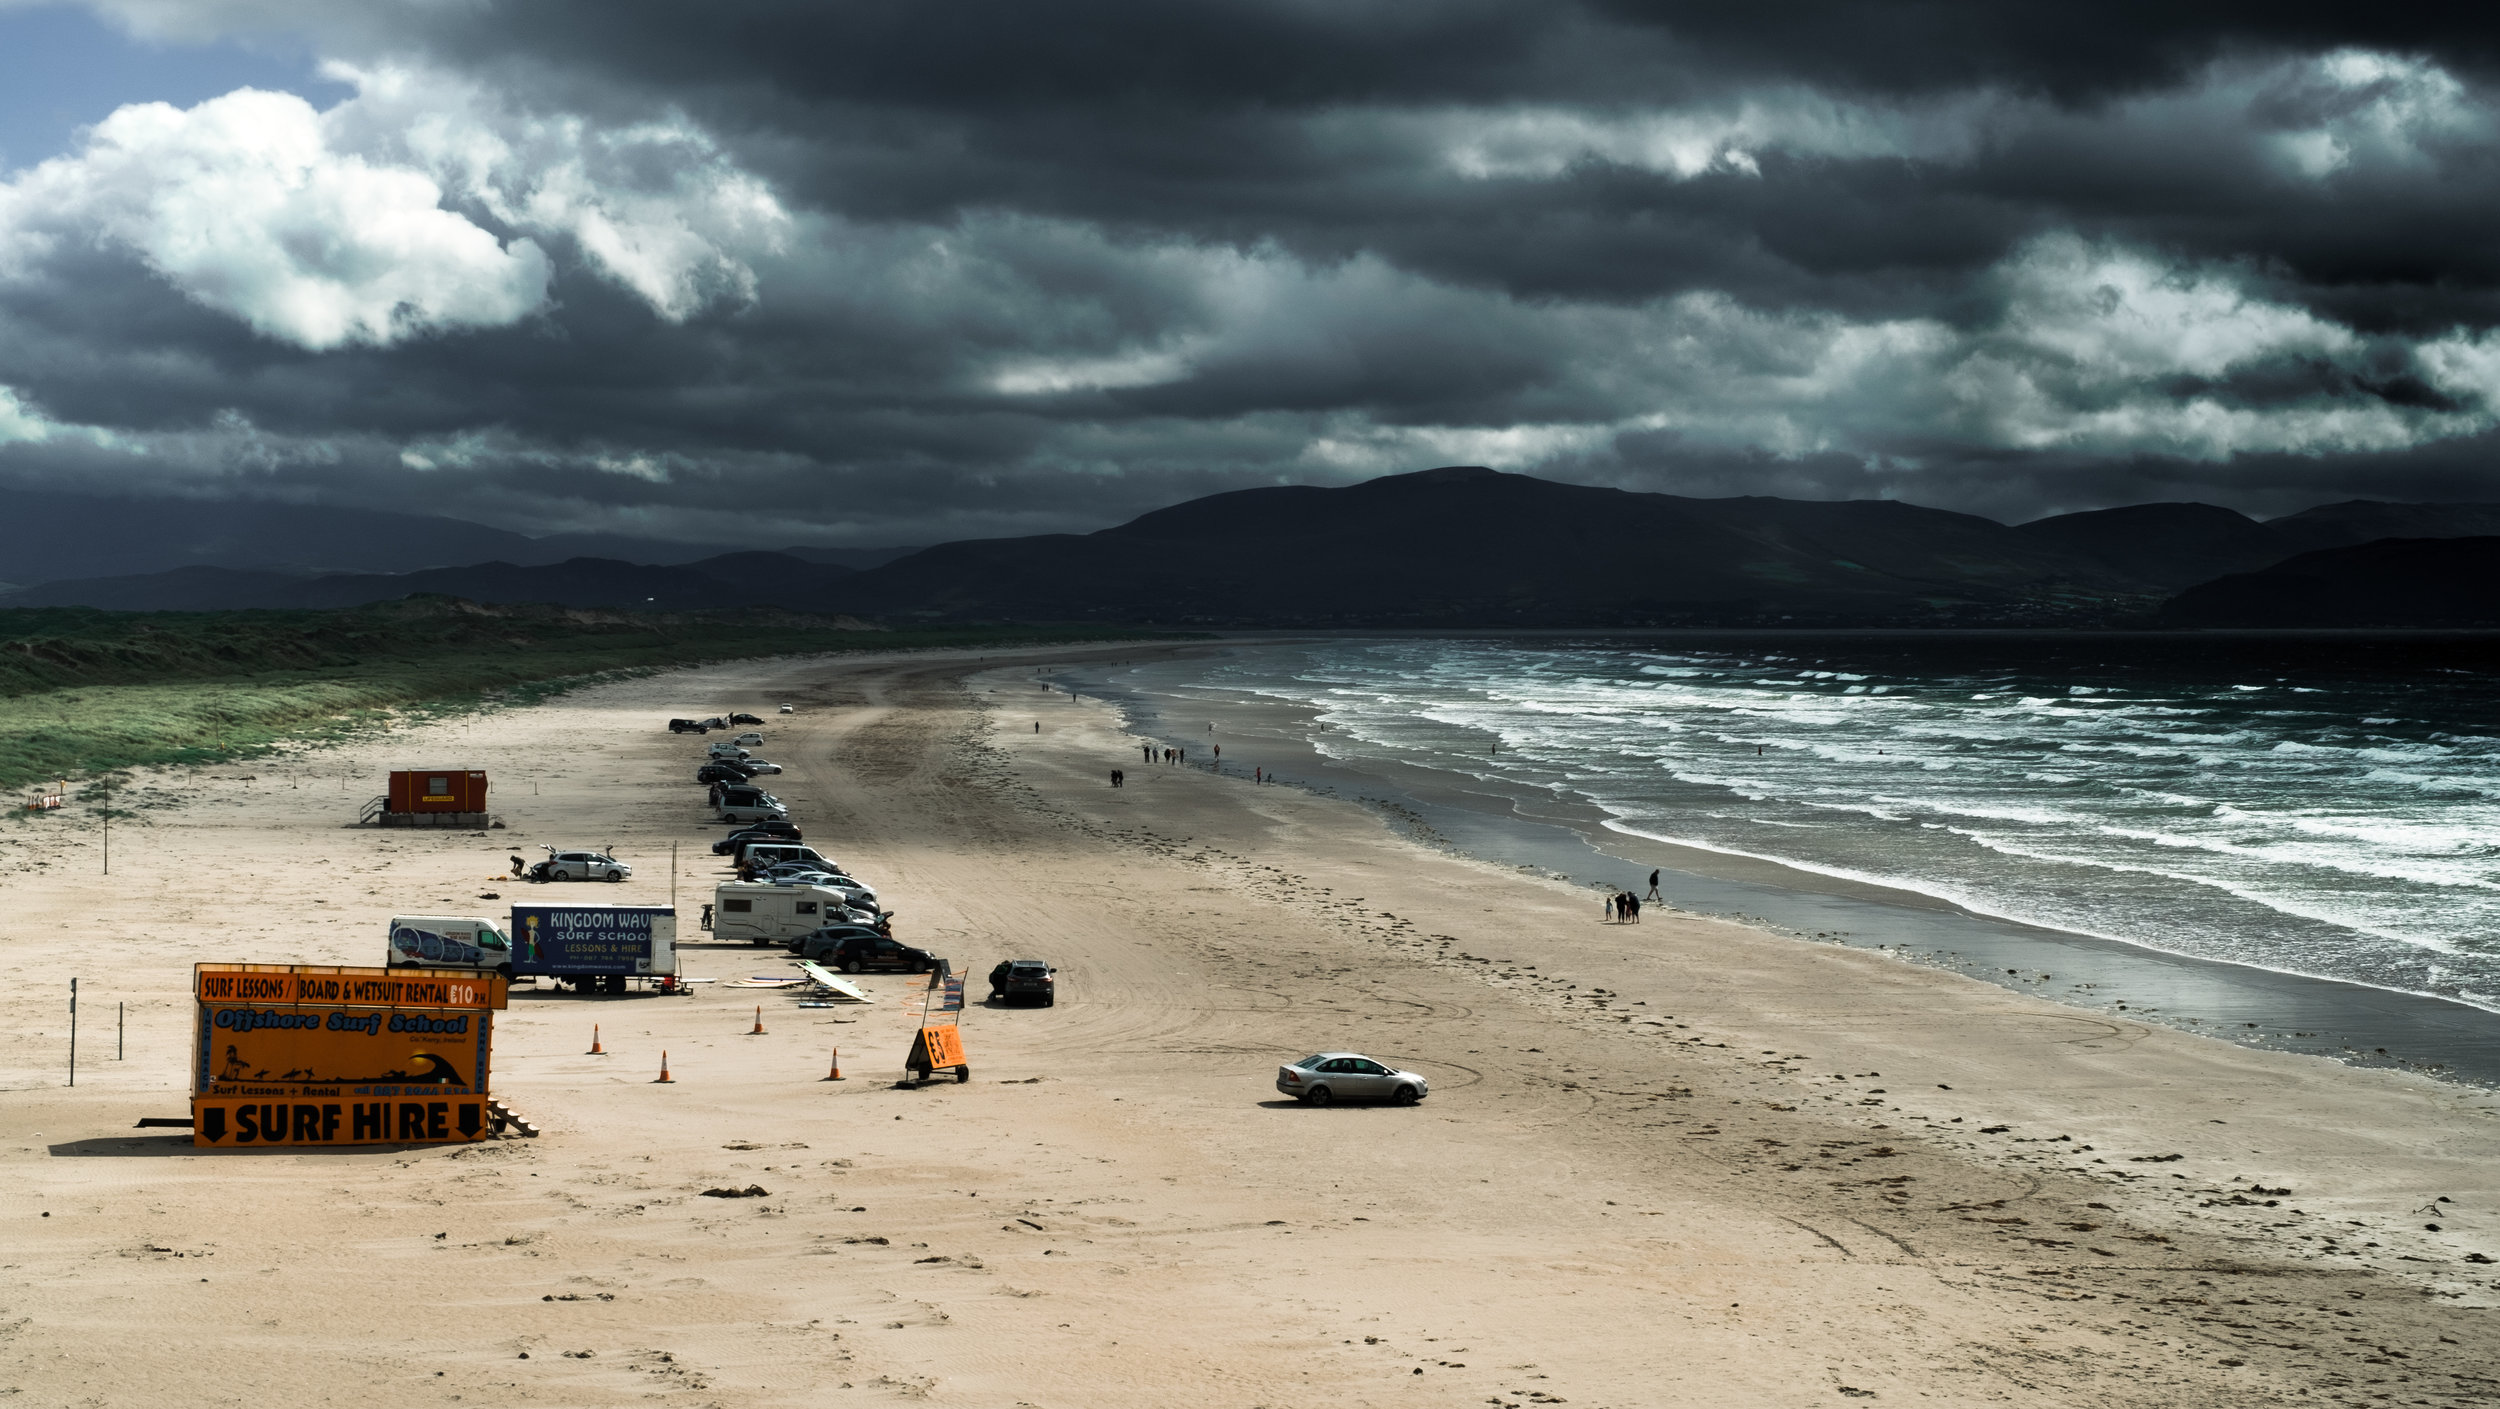 Inch Beach, on our way out to Dingle, Ireland